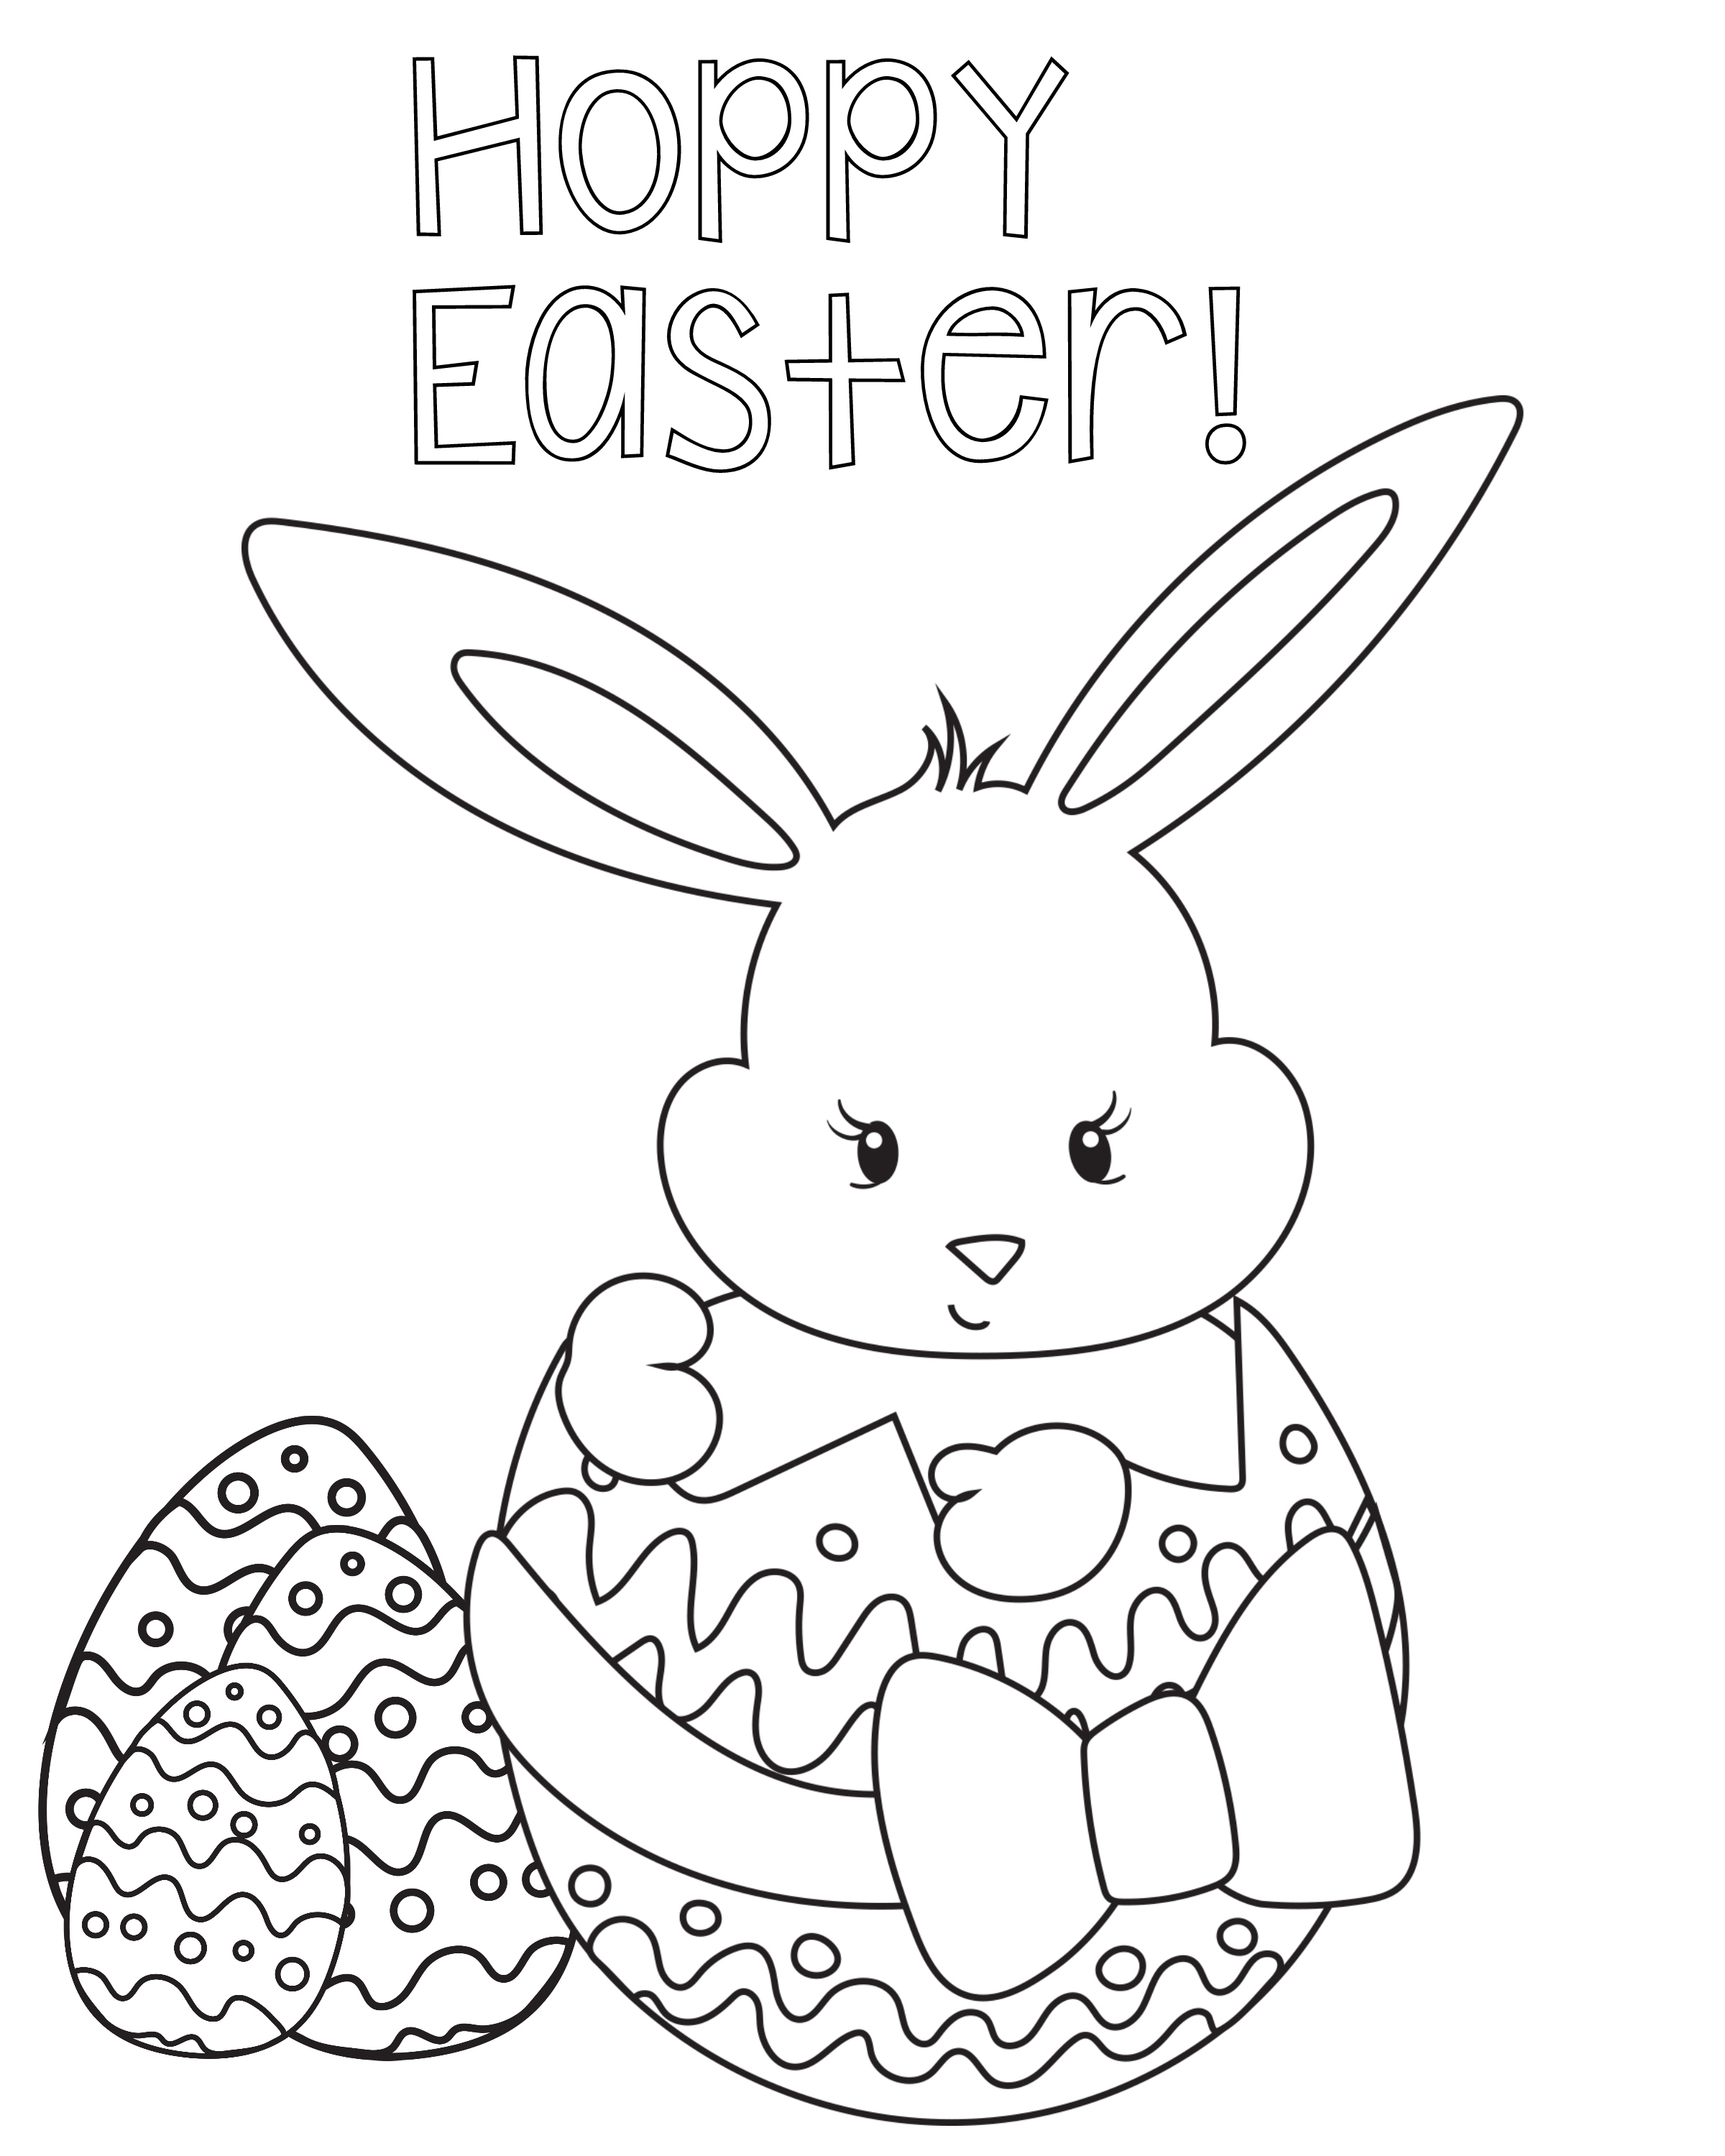 Delighted Bunny Print Out Coloring Pages Easter for Kids Crazy Printable Of Easter Basket Coloring Pages to Print Gallery